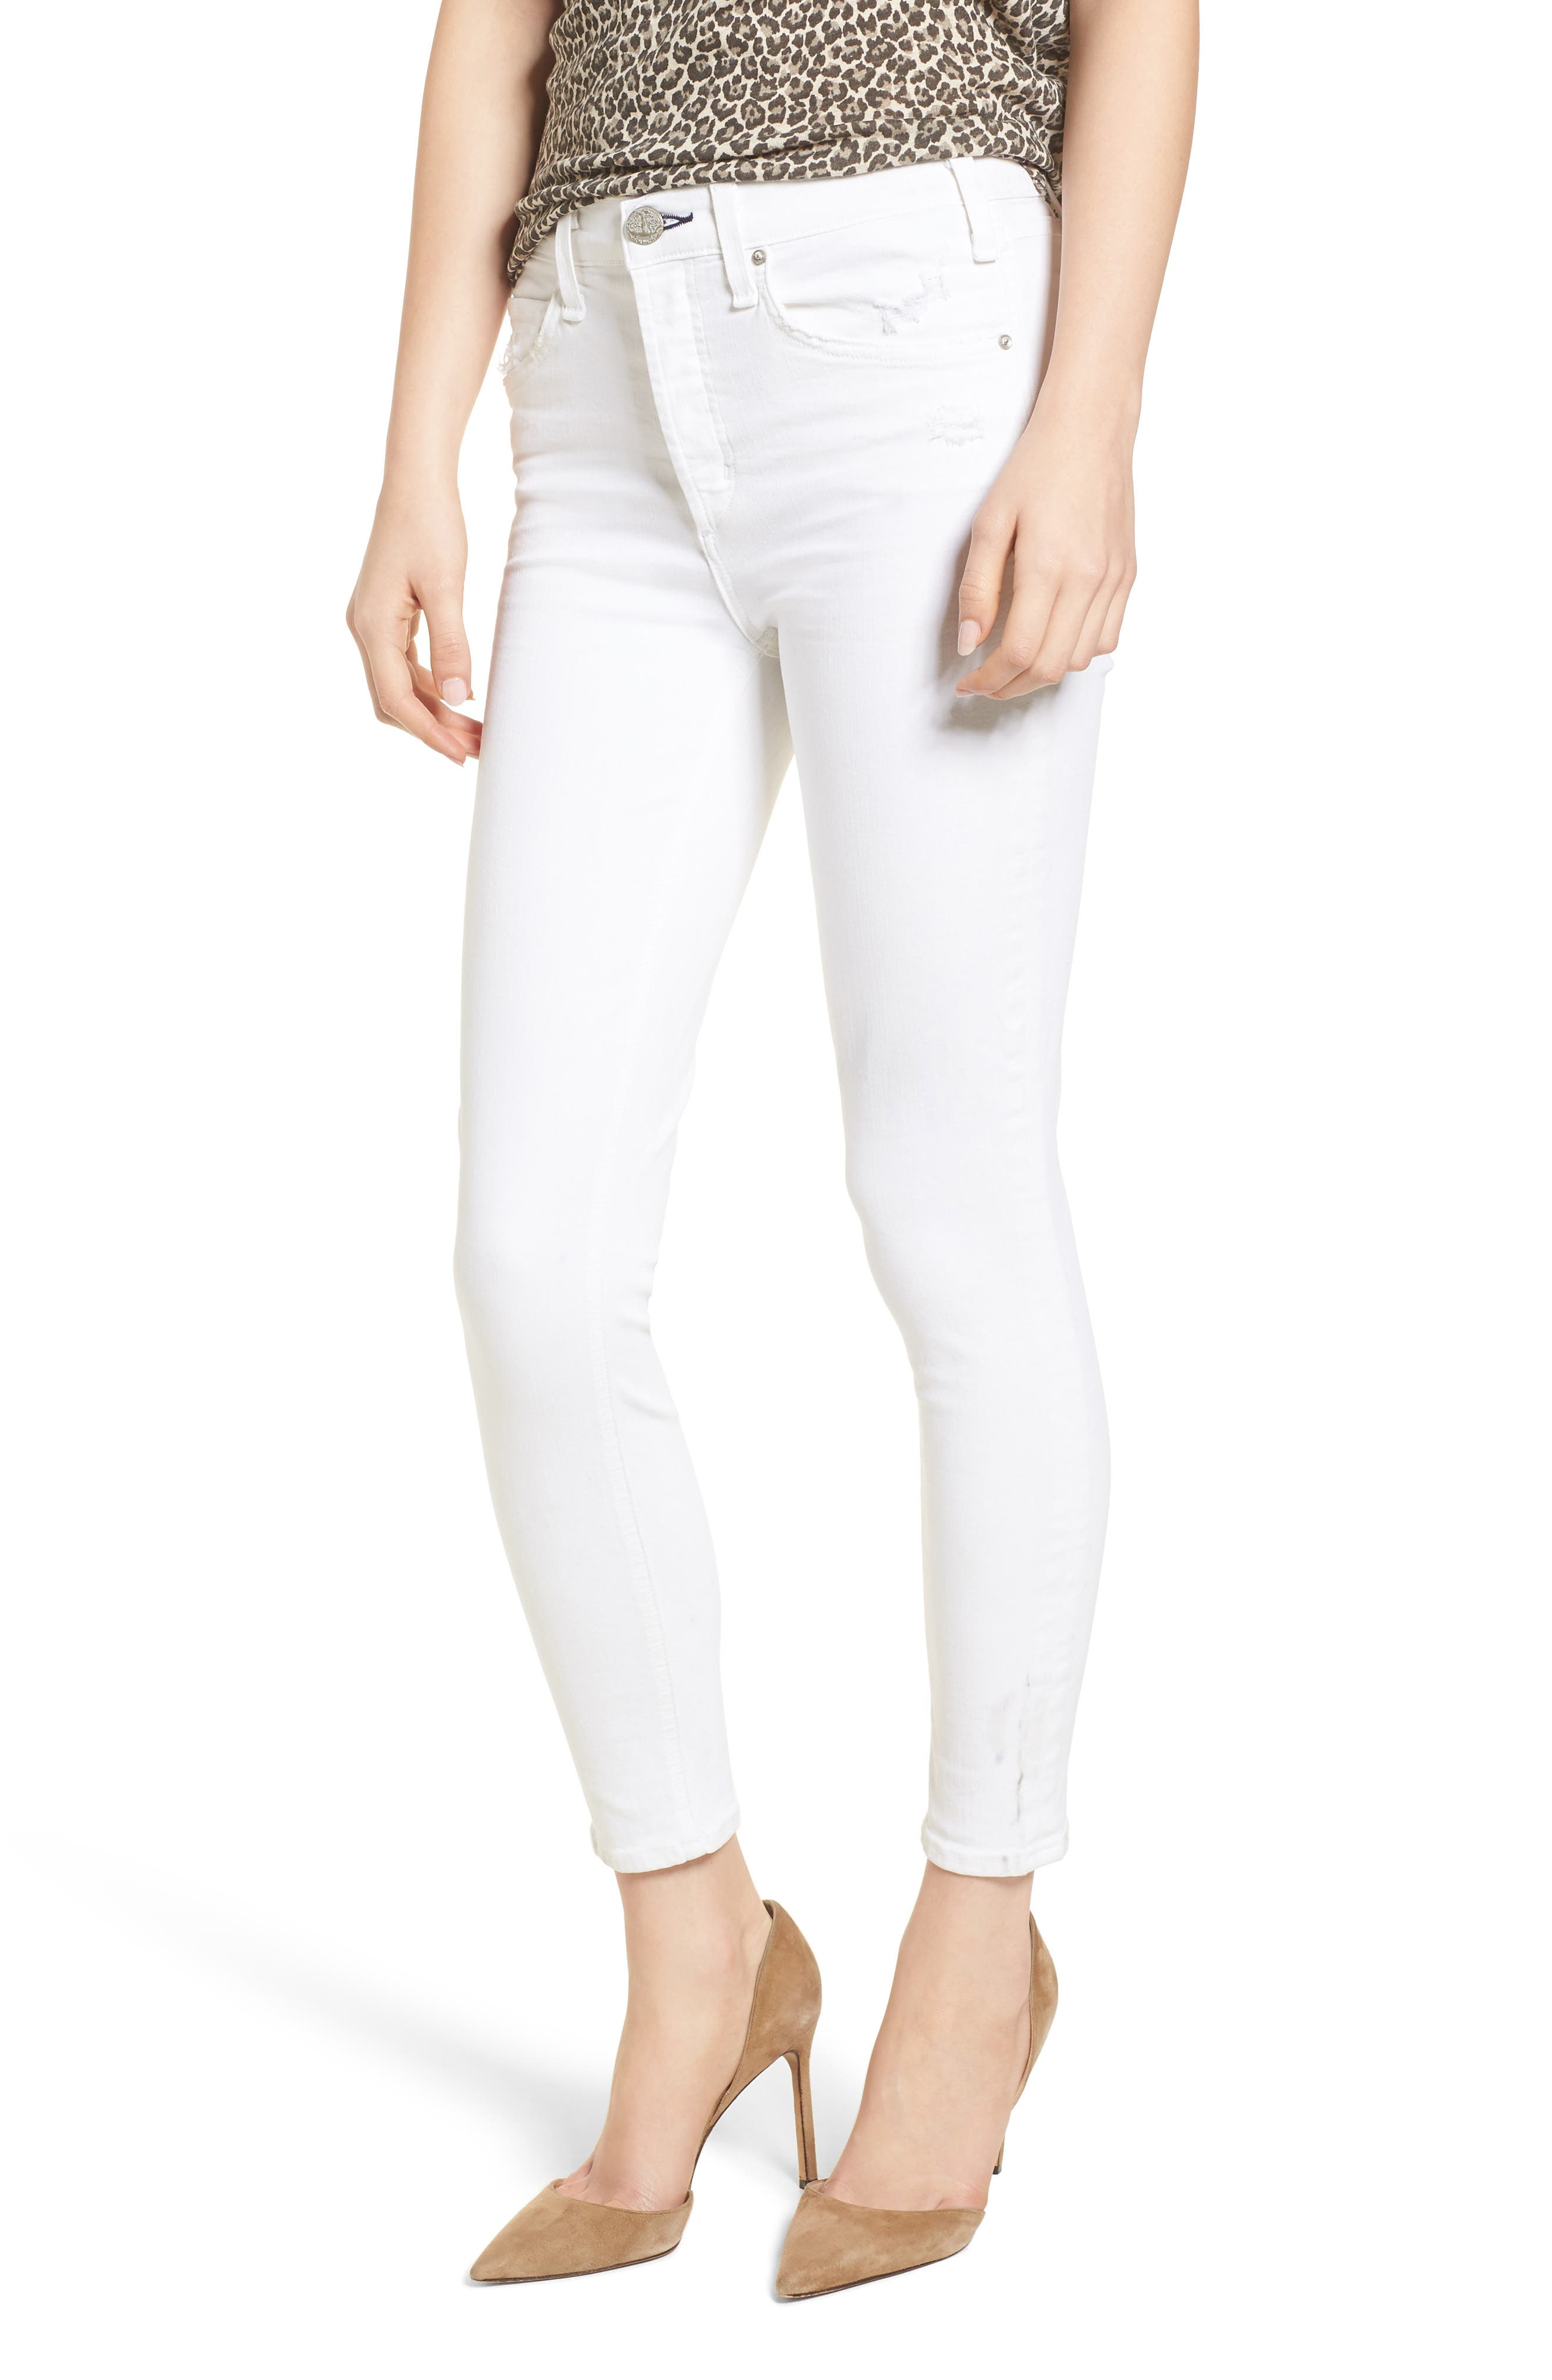 Newton Skinny Ankle Jeans,                         Main,                         color, 100